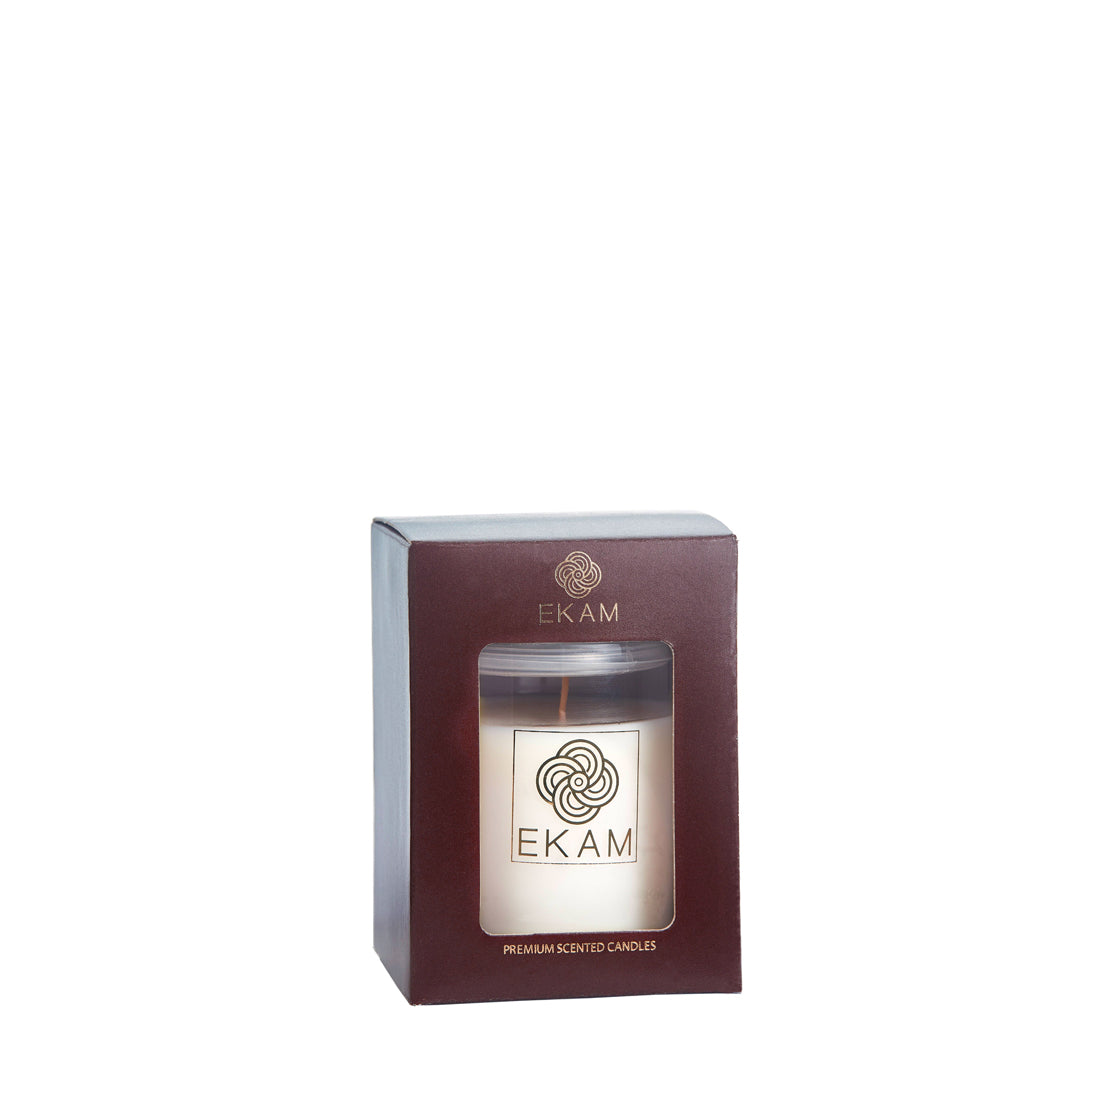 Ekam's Cotton Scented Candle